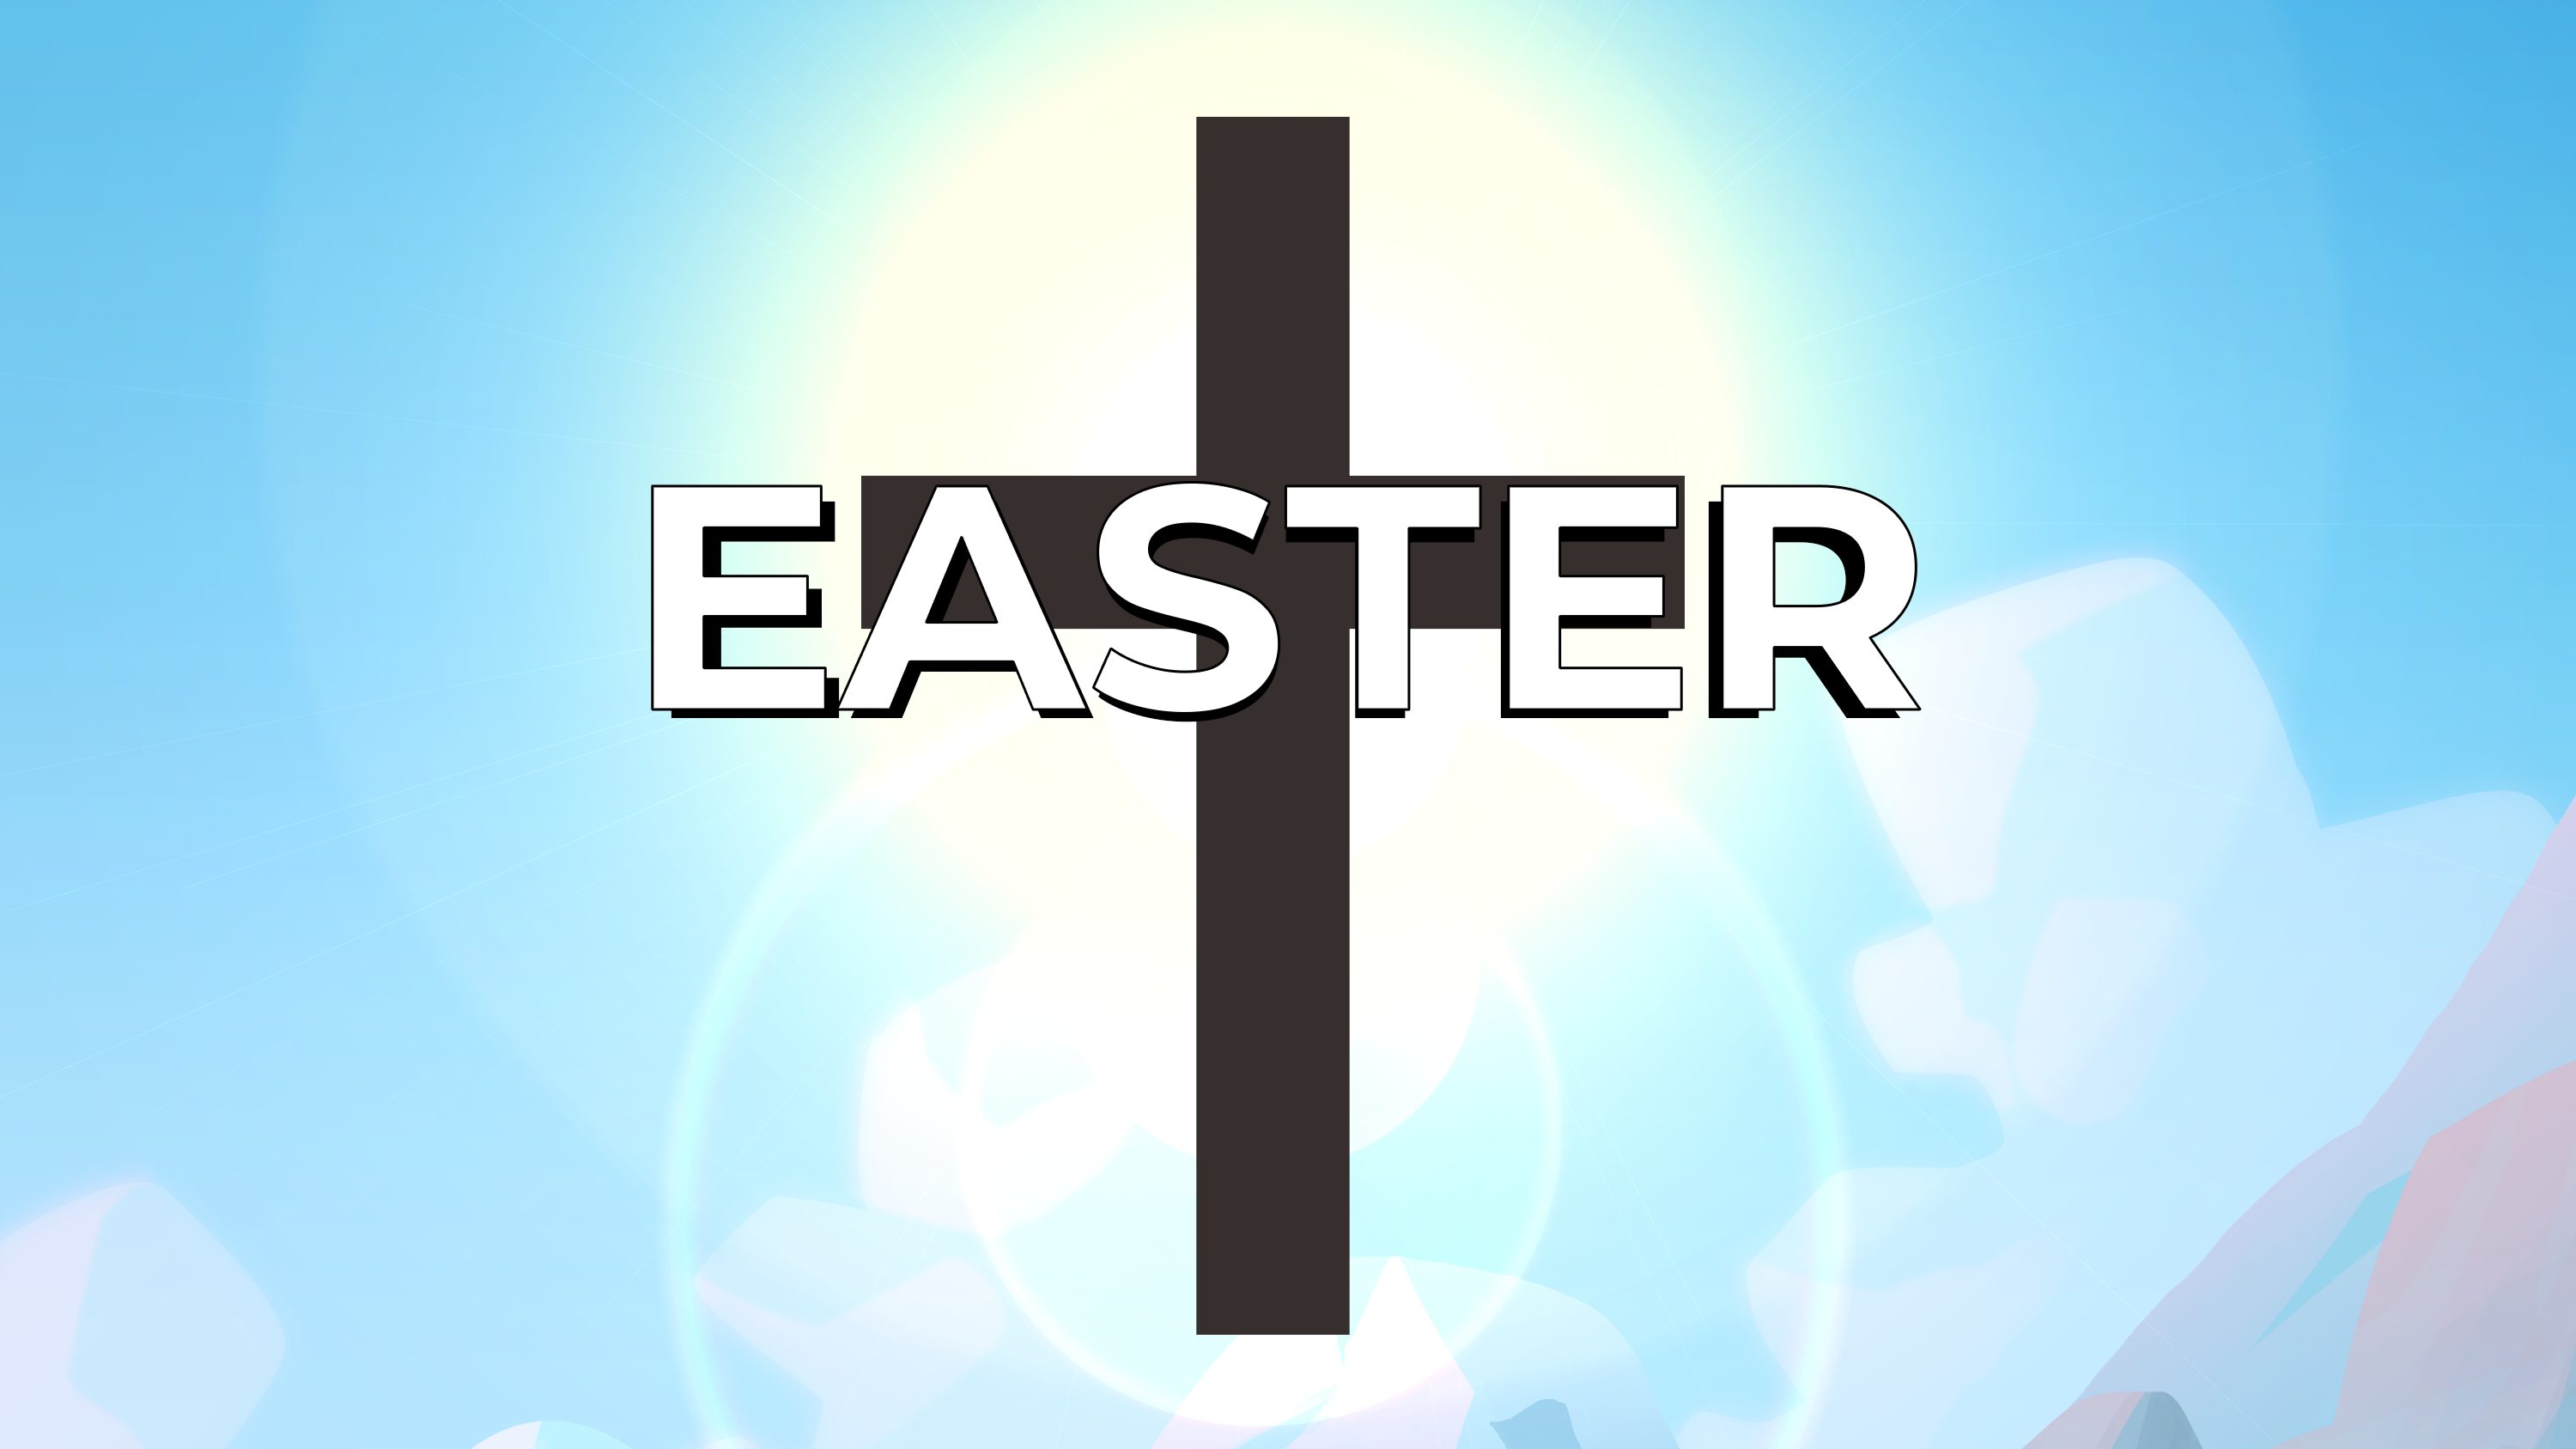 Inundating meaning of easter